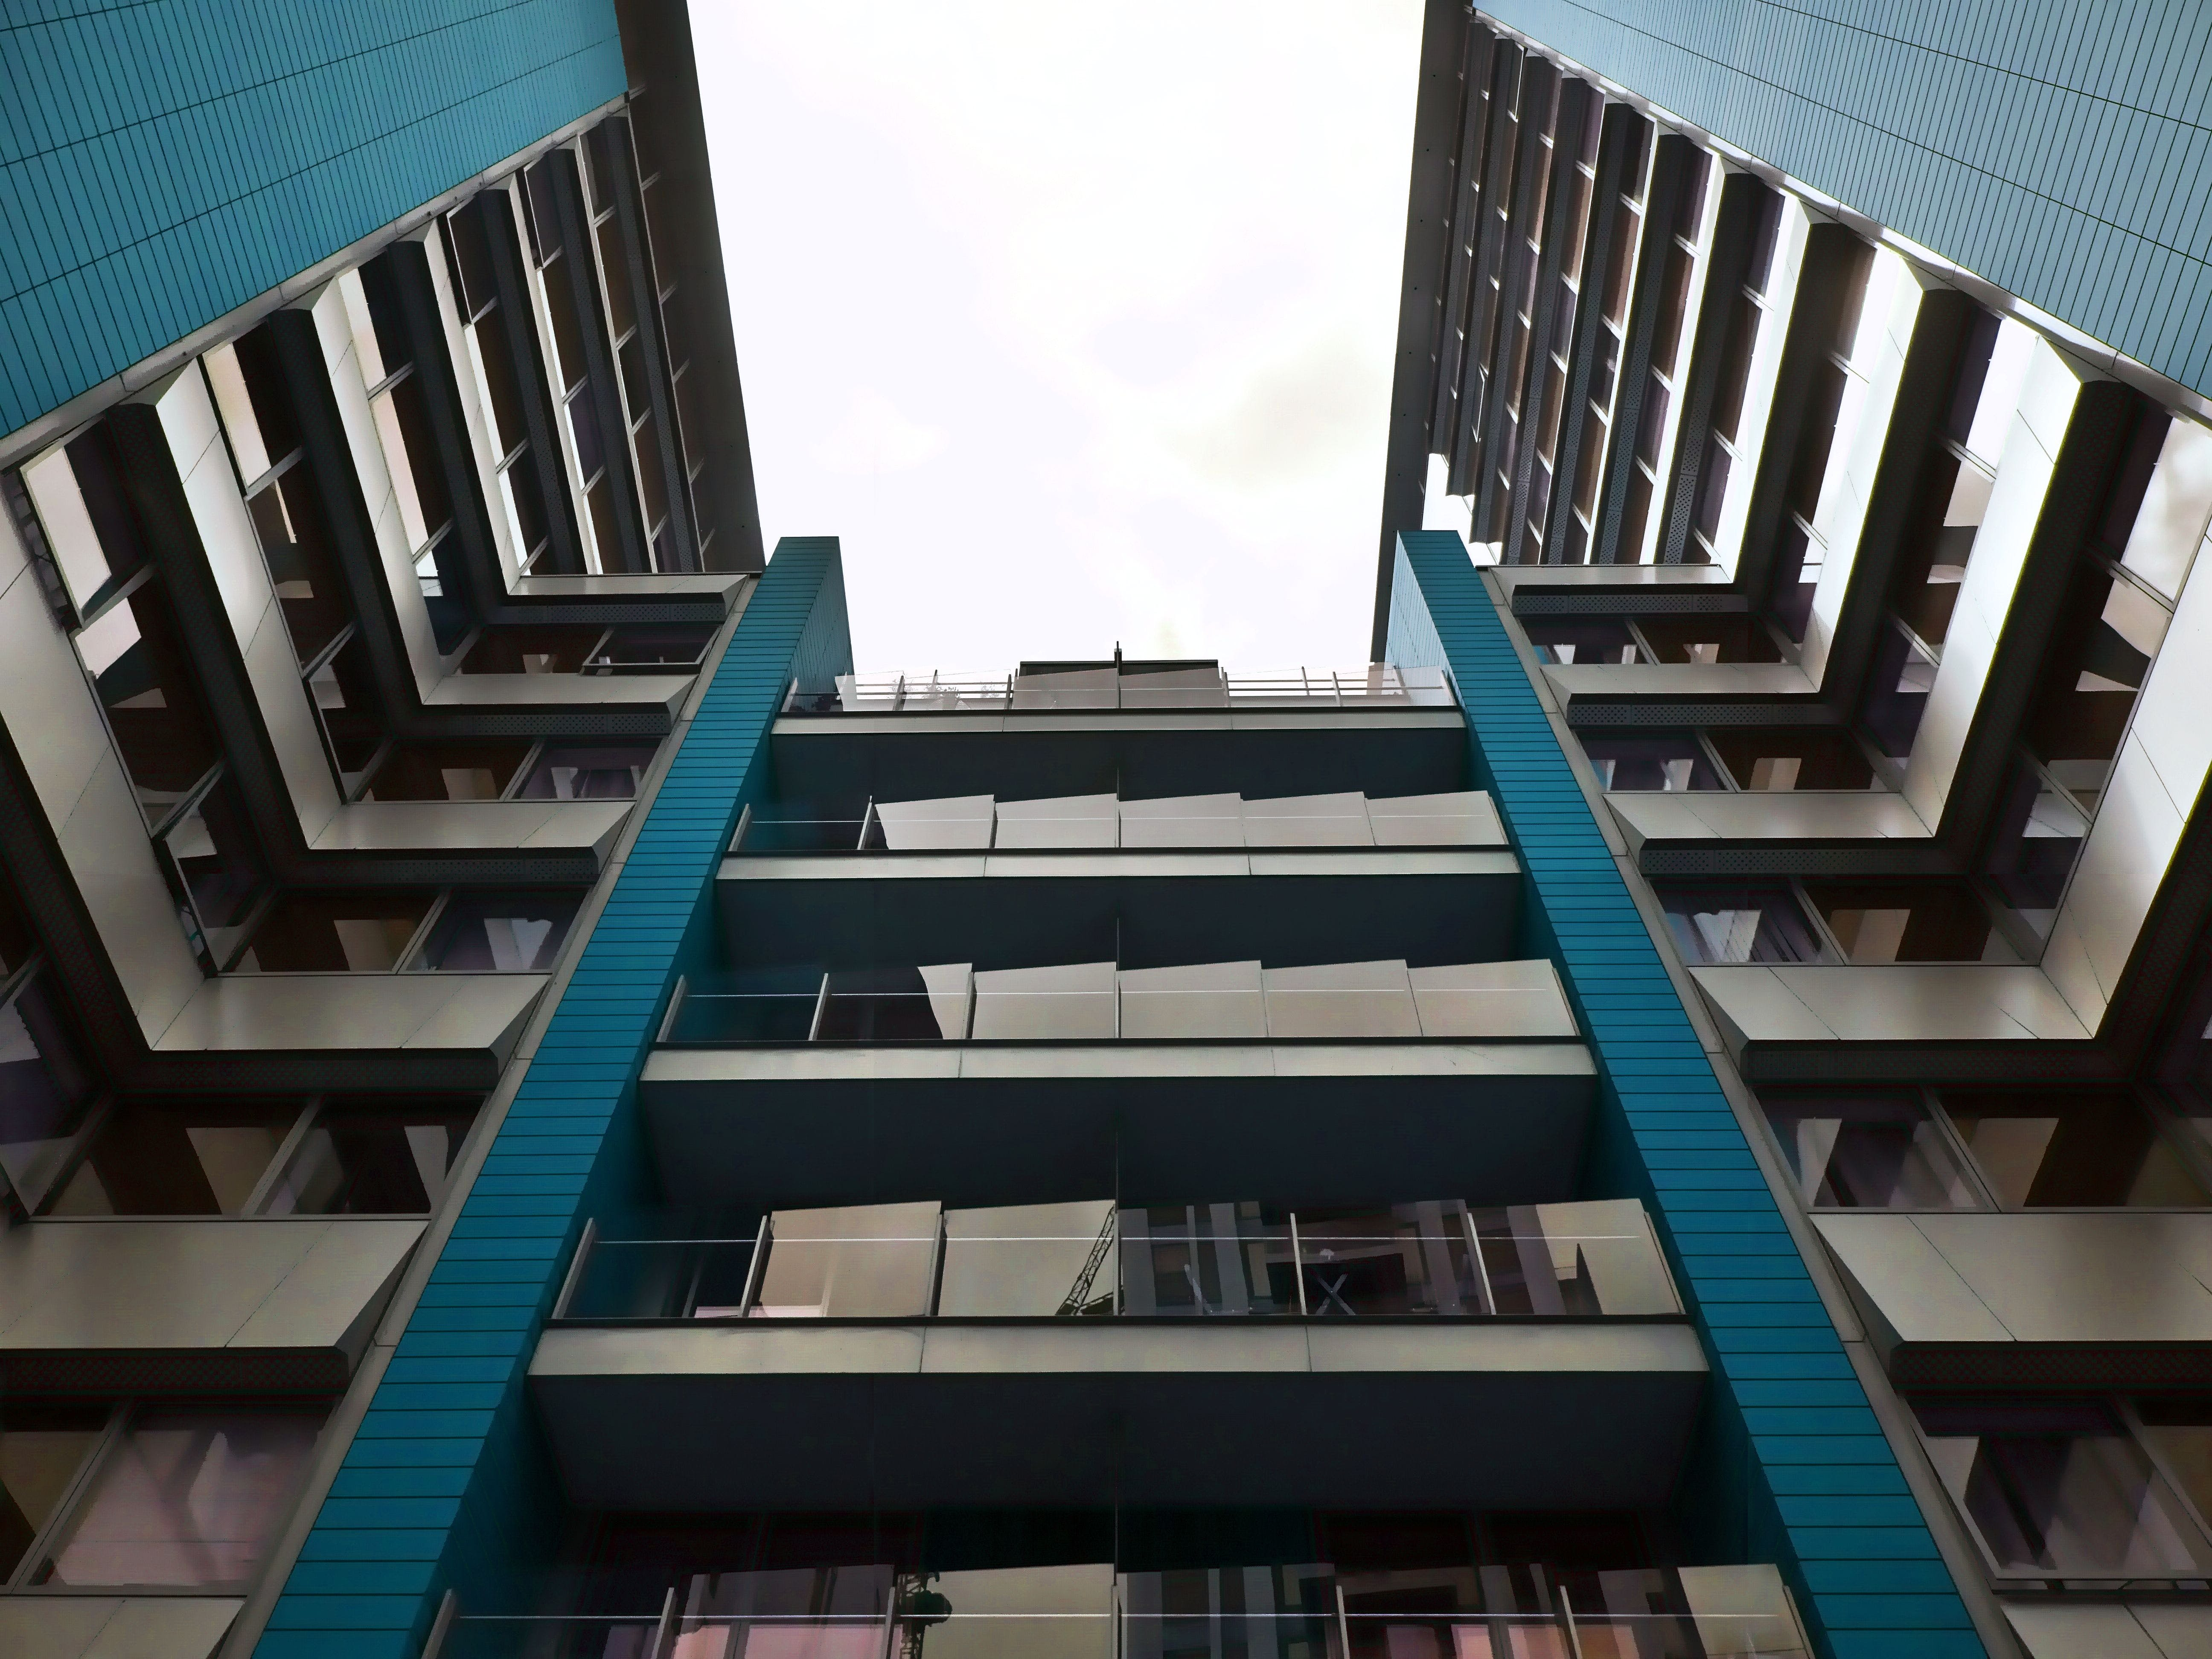 Low-angle Photography of Gray and Blue High-rise Building